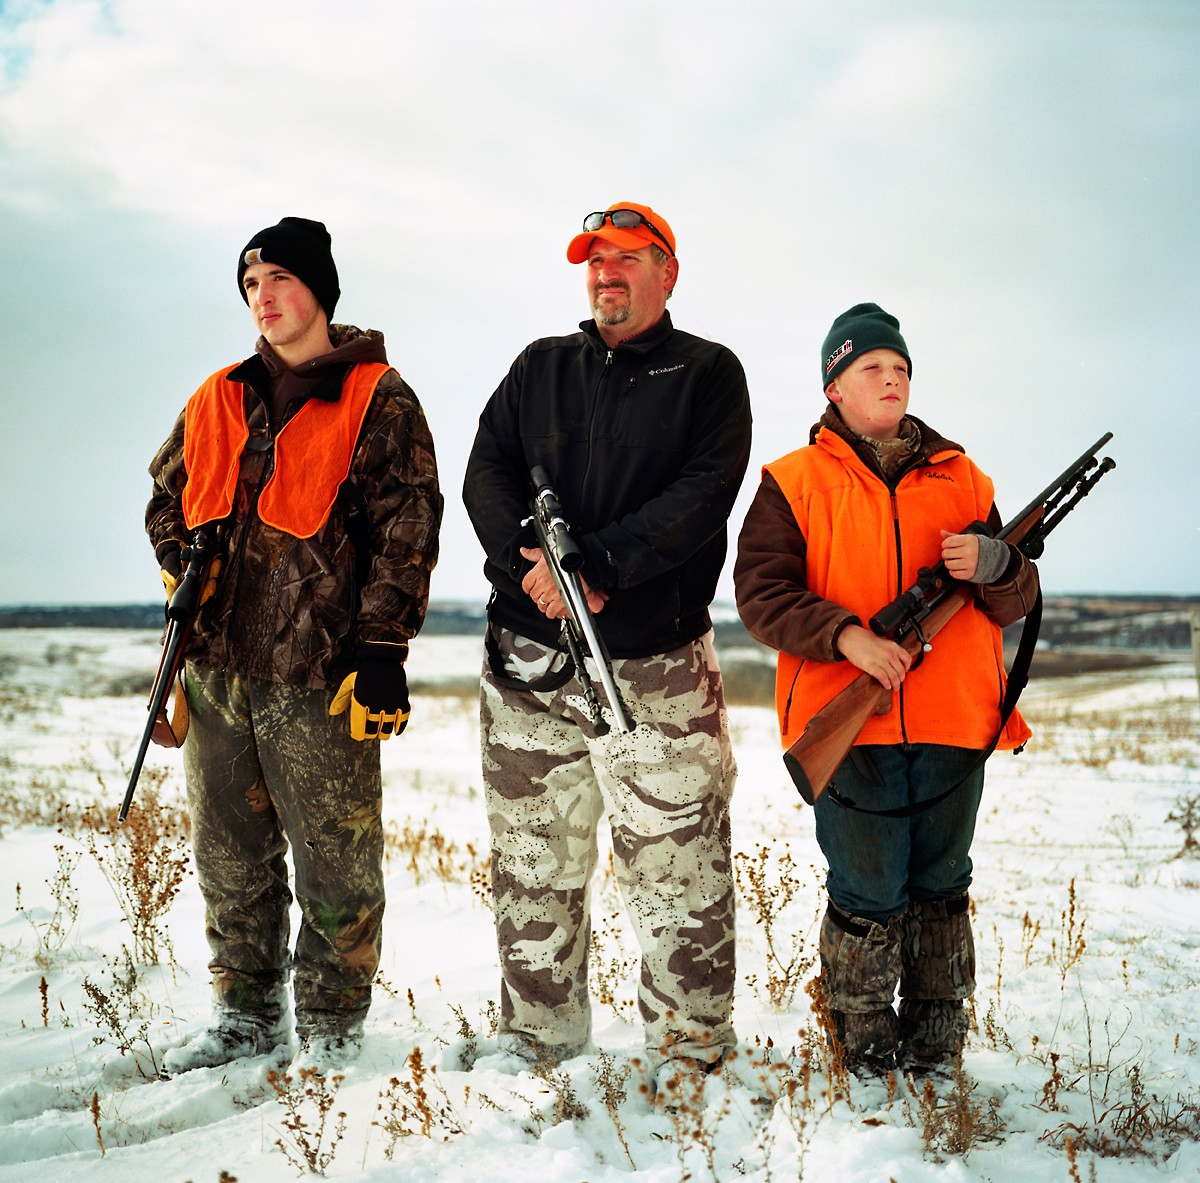 Jake Crumly, 15, left, father Ryan Crumly, and Zach Crumly hunt for deer on opening weekend on their family's property near Page, NE. The proposed Keystone XL would cut through their family's property.